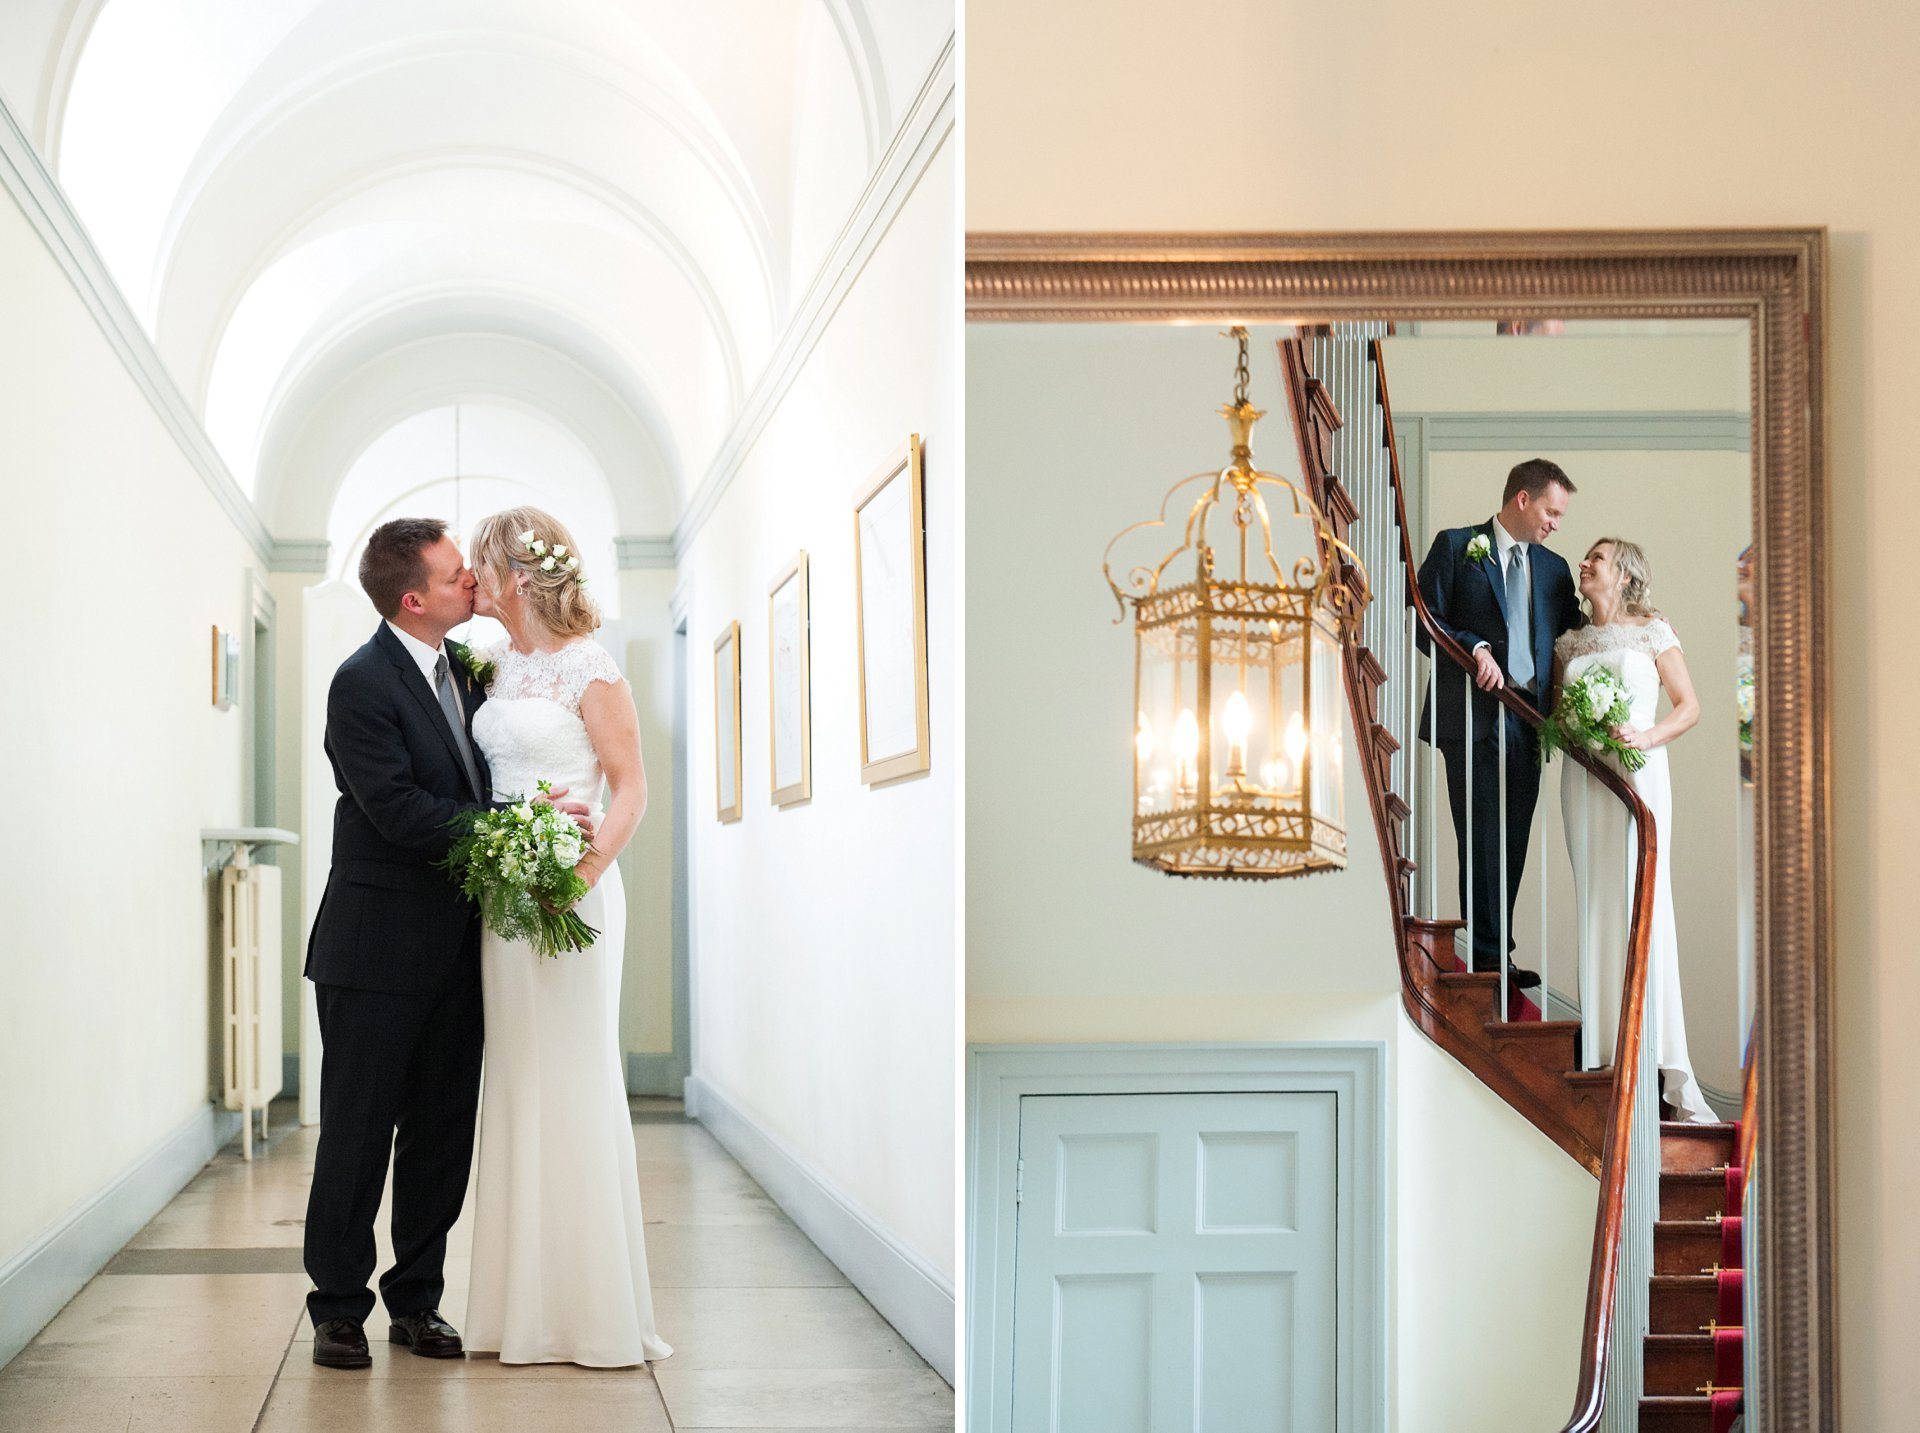 Bride and groom in the cooridor outside Bishop Terrick's Drawing Room and on the red staircase at Fulham Palace to celebrate their wedding